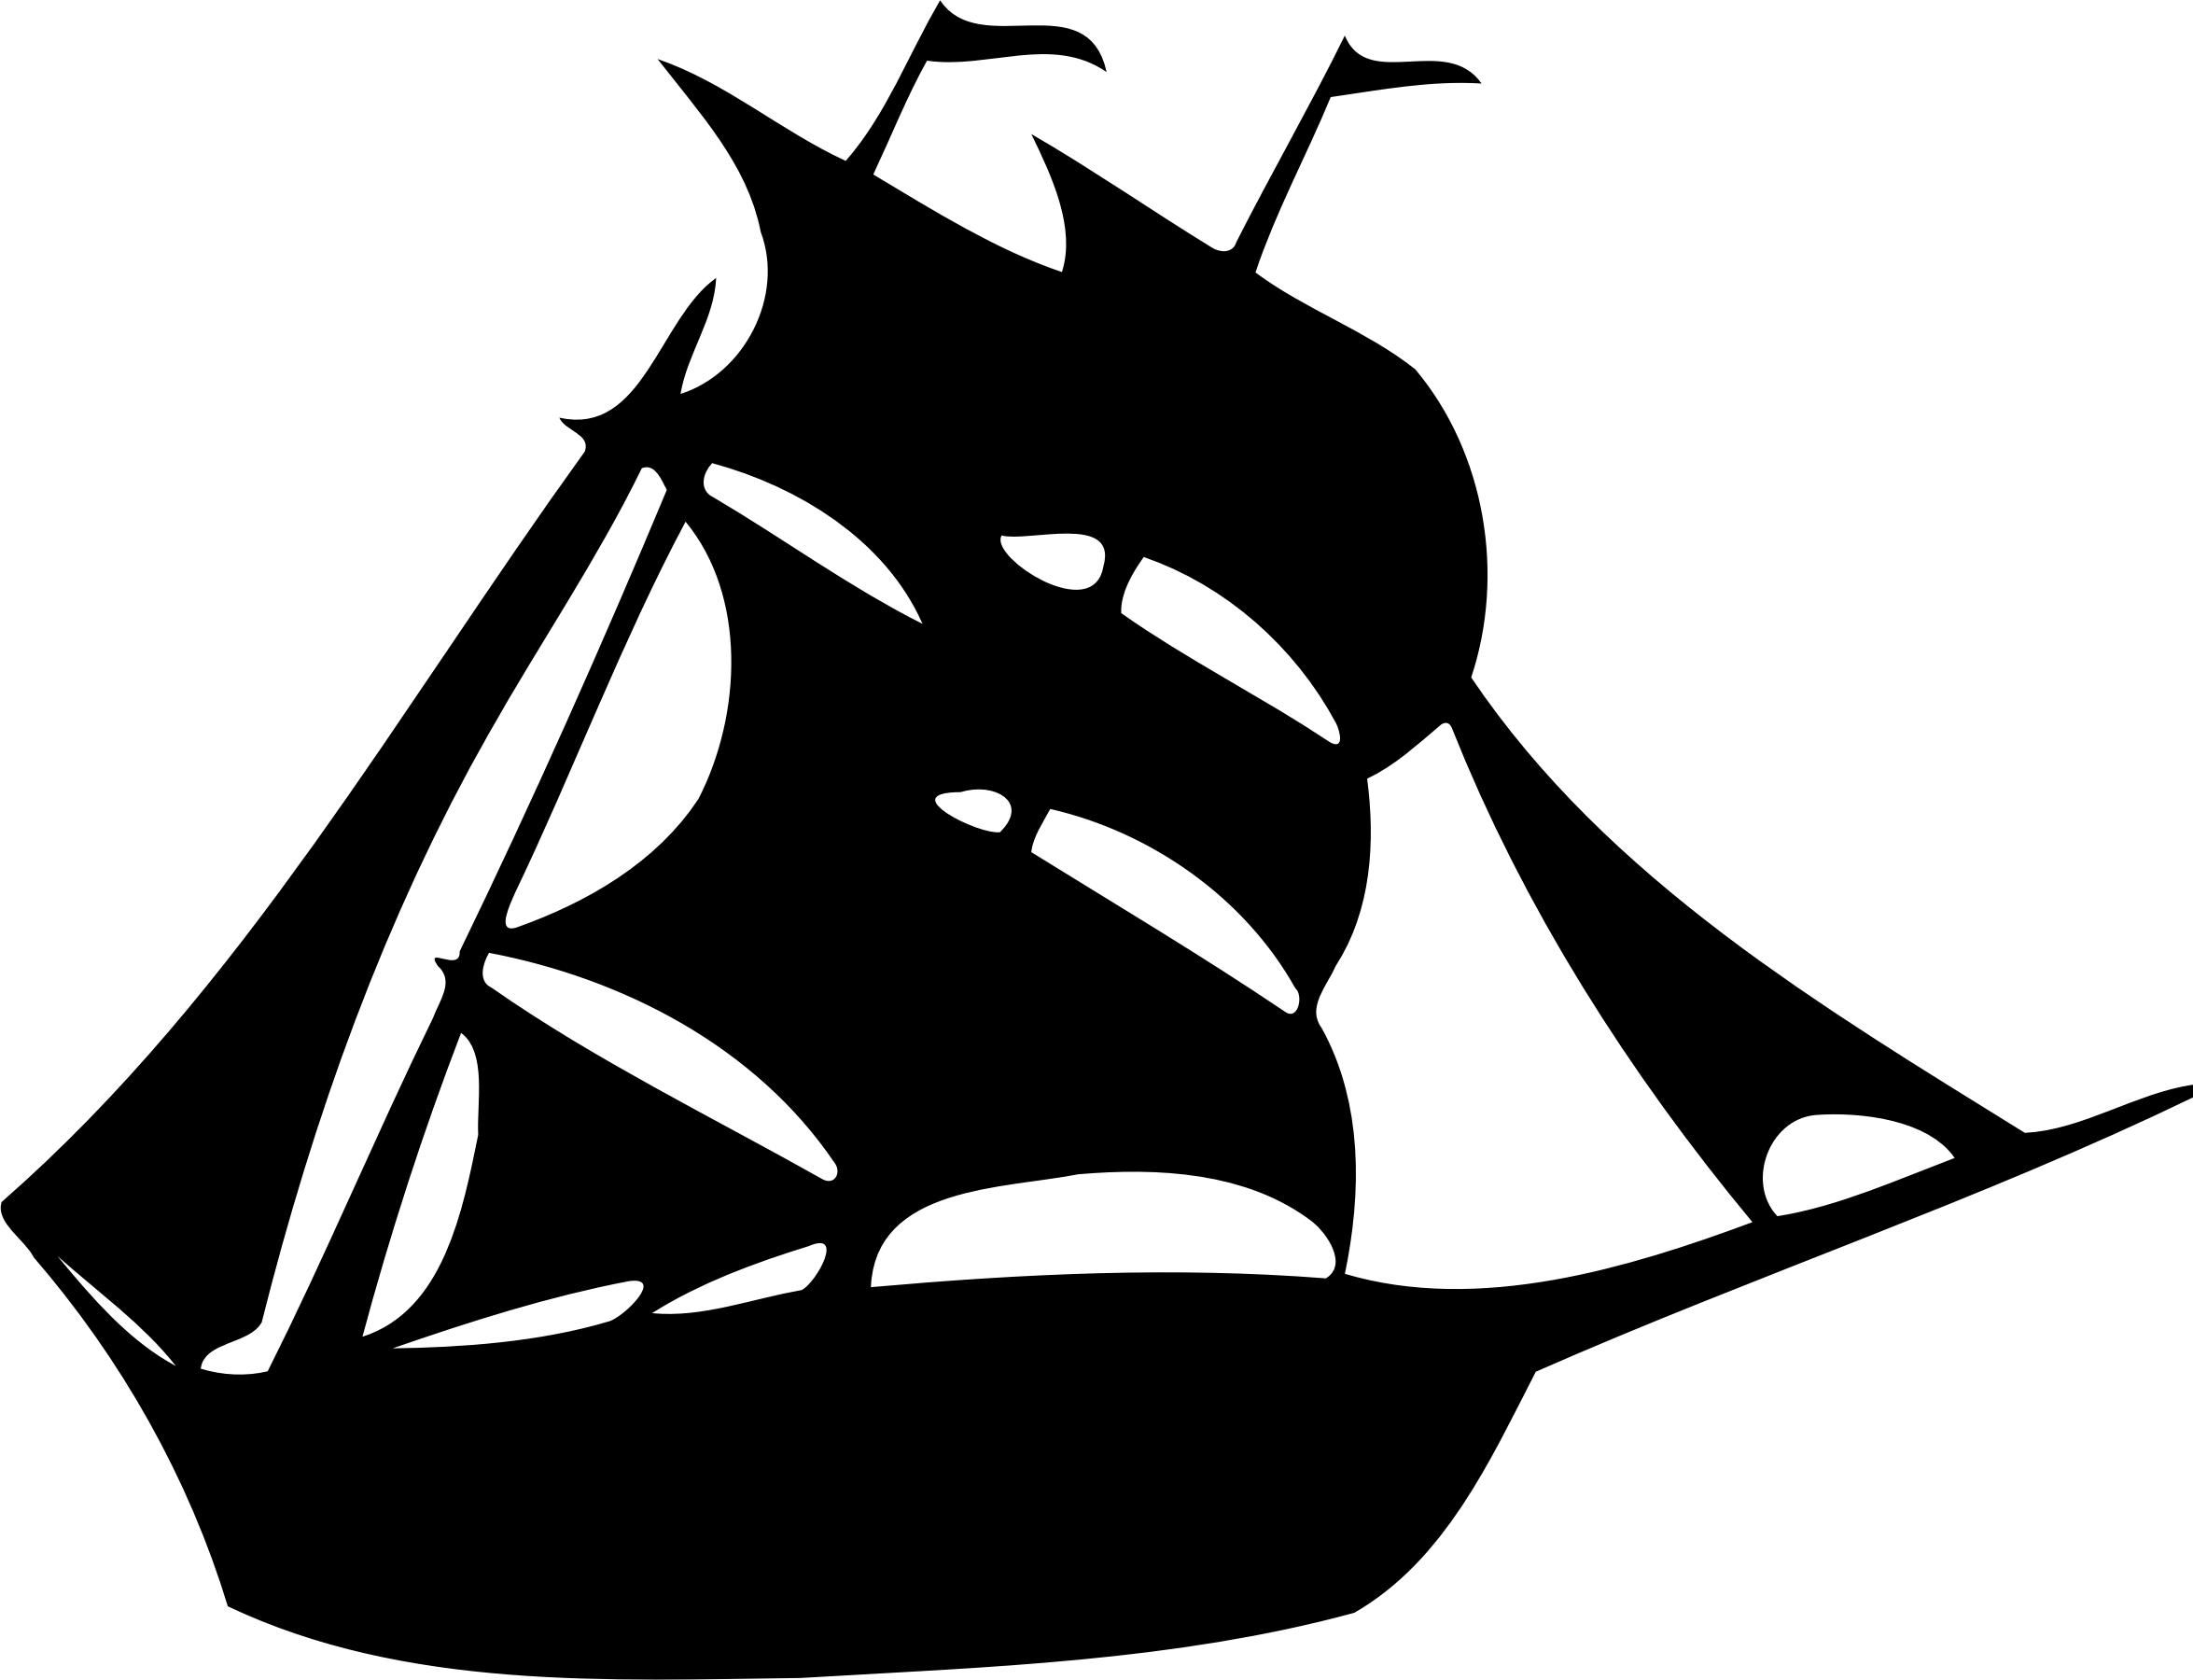 Ship Silhouette Png - Ship silhouette   Silhouettes & Shapes   Boat silhouette, Ship ...